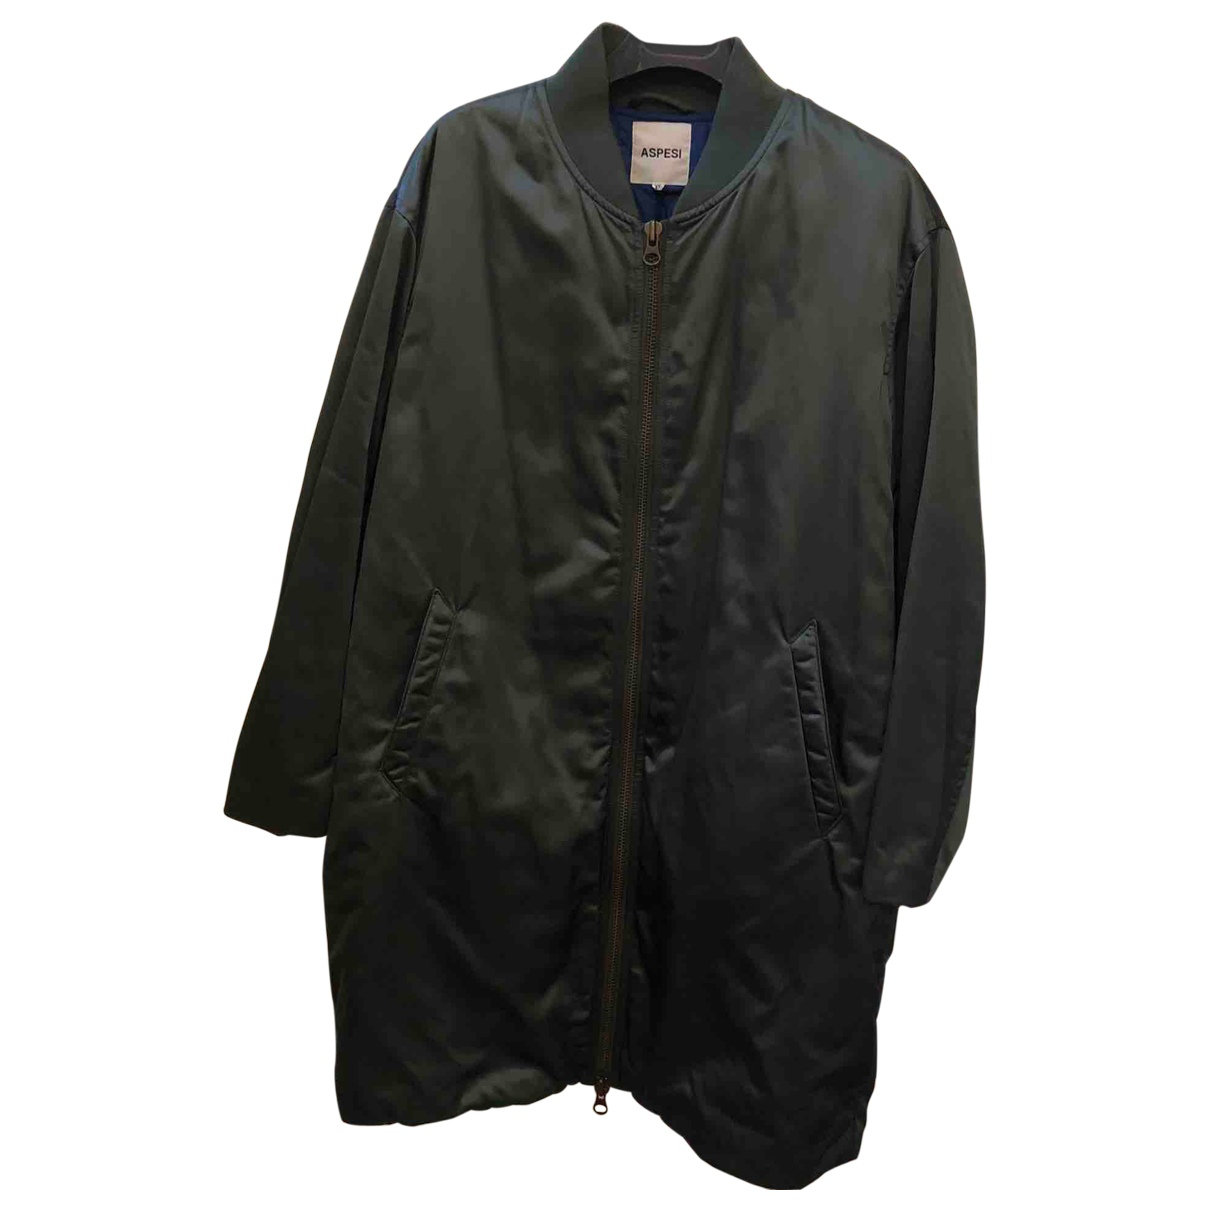 Aspesi \N Green coat for Women XS International